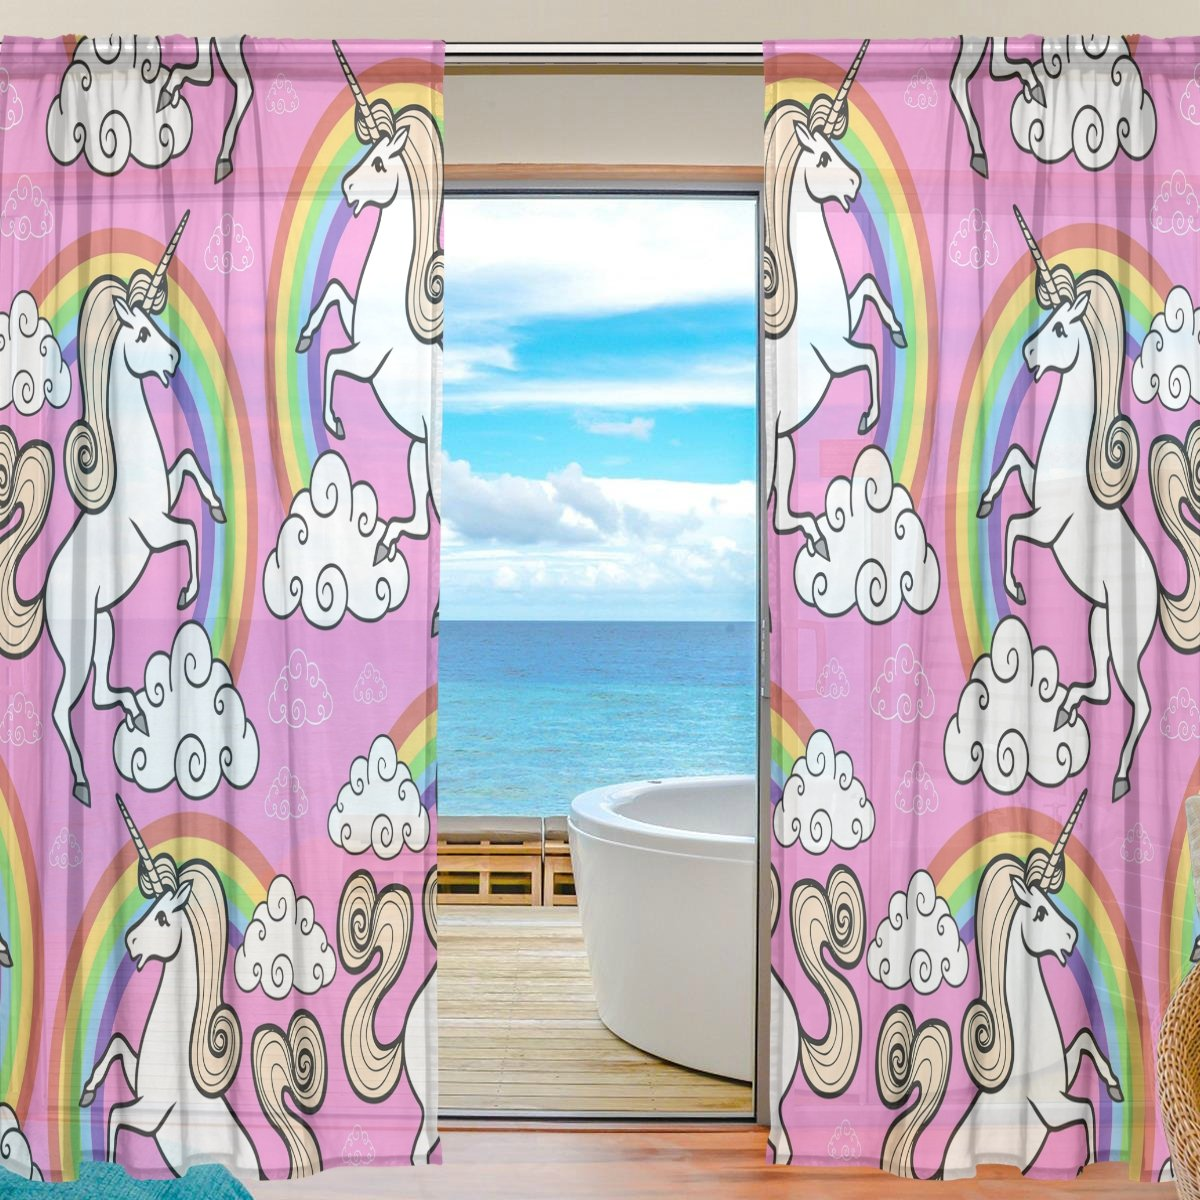 SEULIFE Window Sheer Curtain, Unicorn Animal Rainbow Star Voile Curtain Drapes for Door Kitchen Living Room Bedroom 55x84 inches 2 Panels